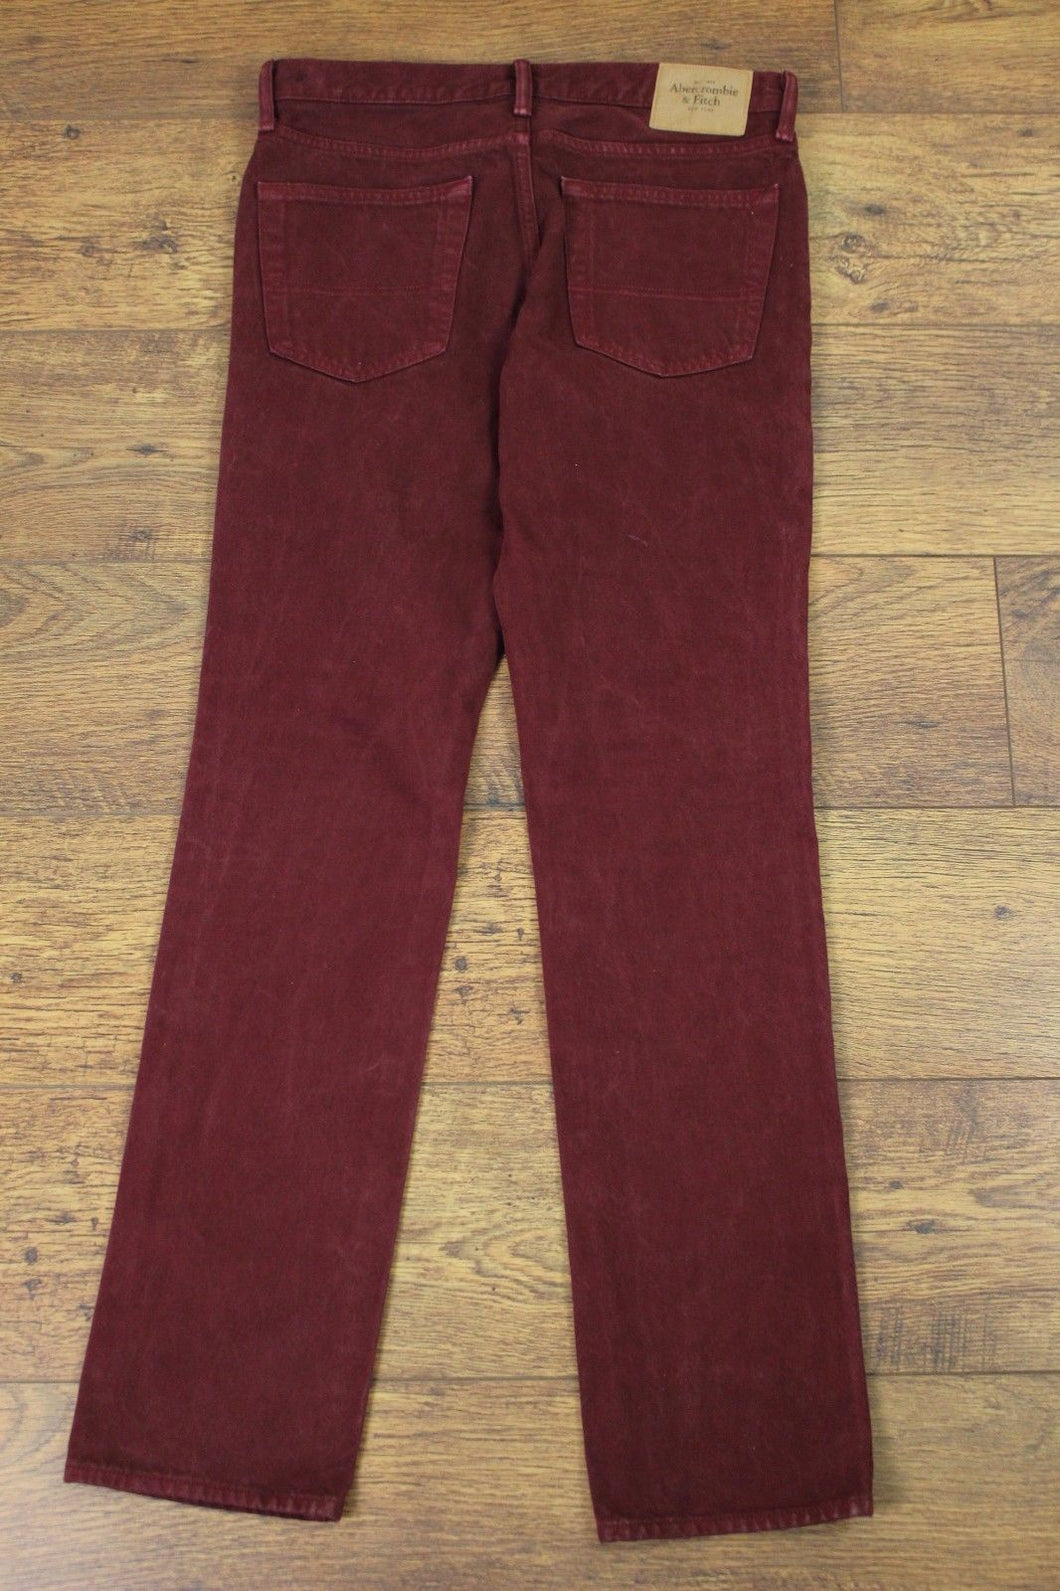 ABERCROMBIE & FITCH Mens Coloured THE A&F SKINNY JEANS - Waist 32